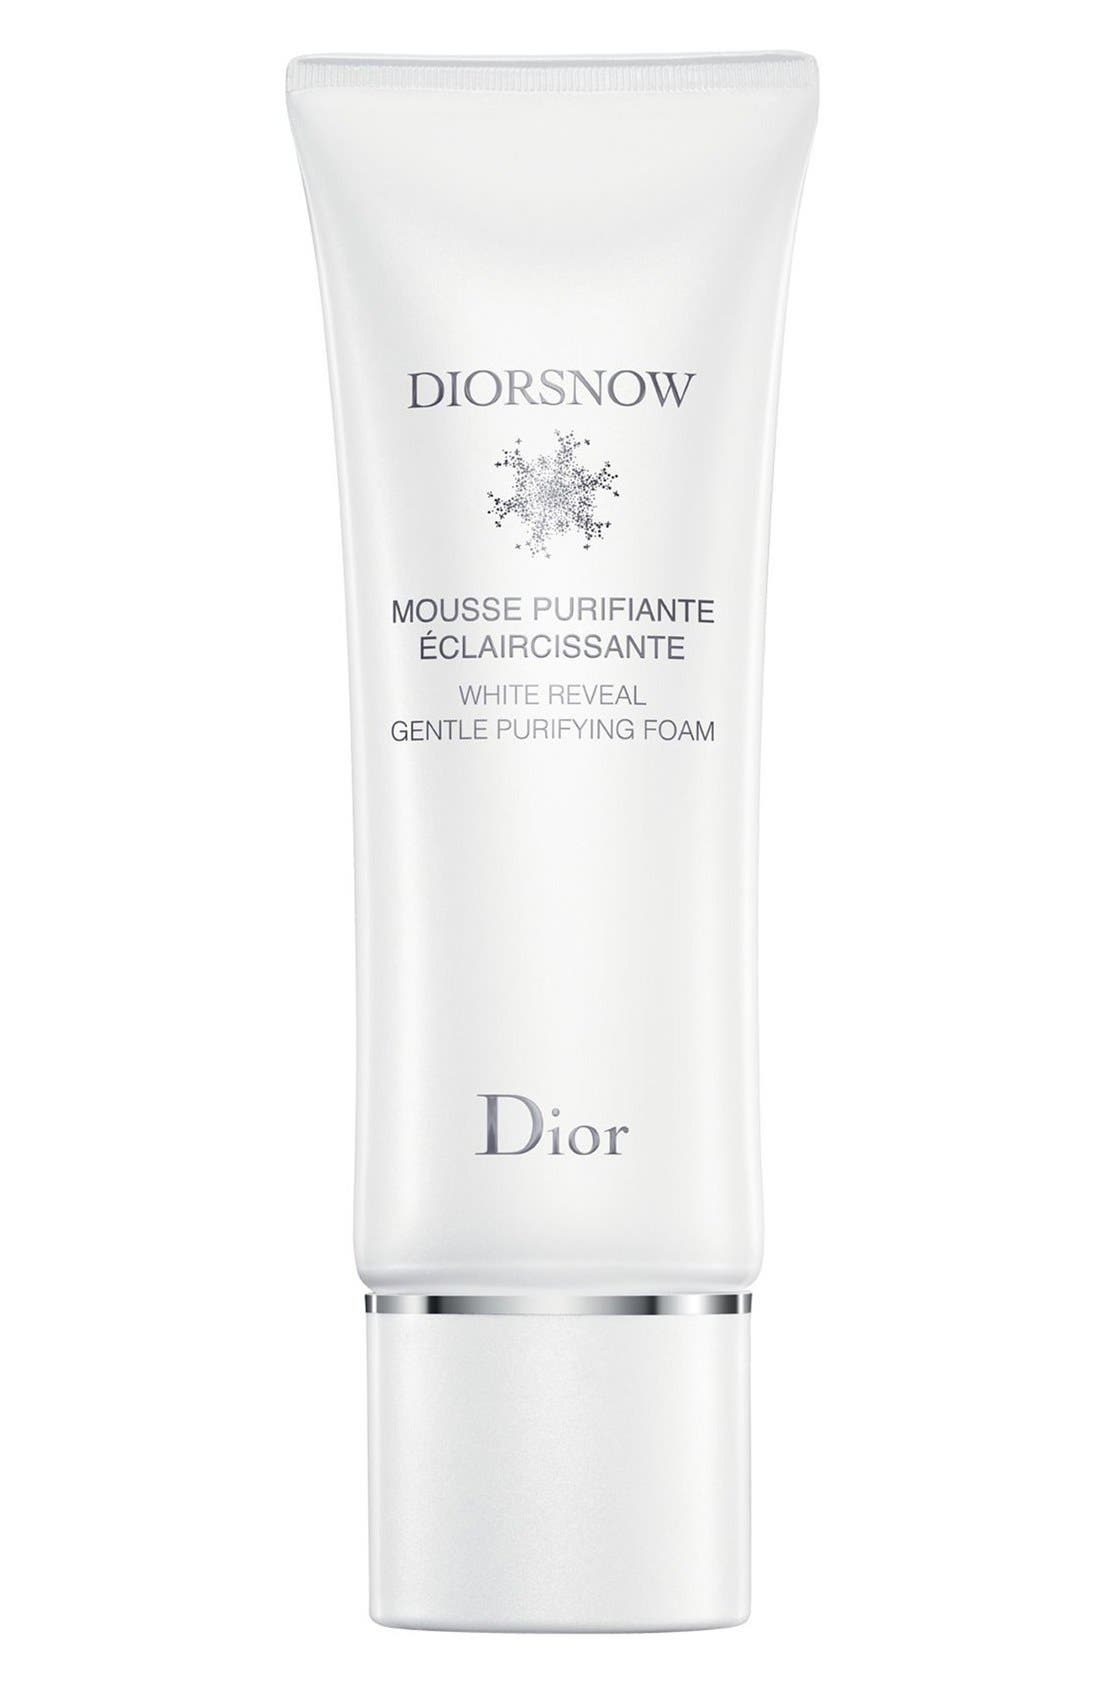 Dior 'Diorsnow' White Reveal Gentle Purifying Foam